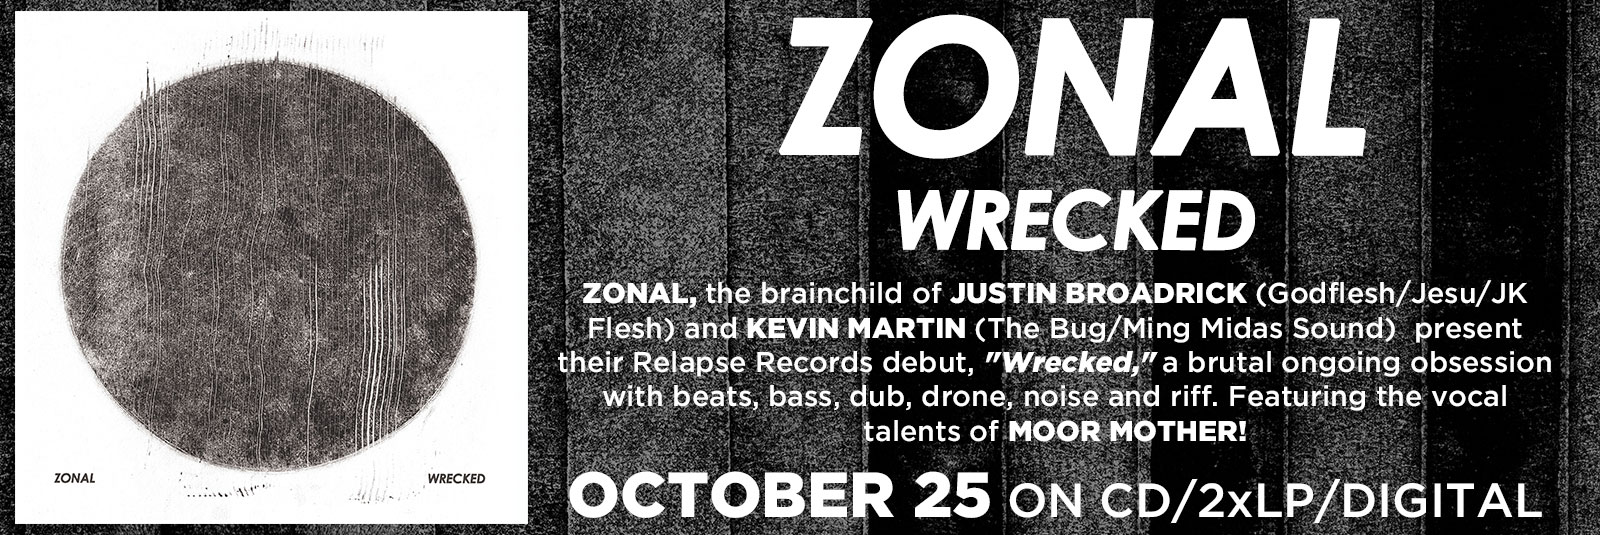 zonal-wrecked-electronic-dub-industrial-relapse-october-25